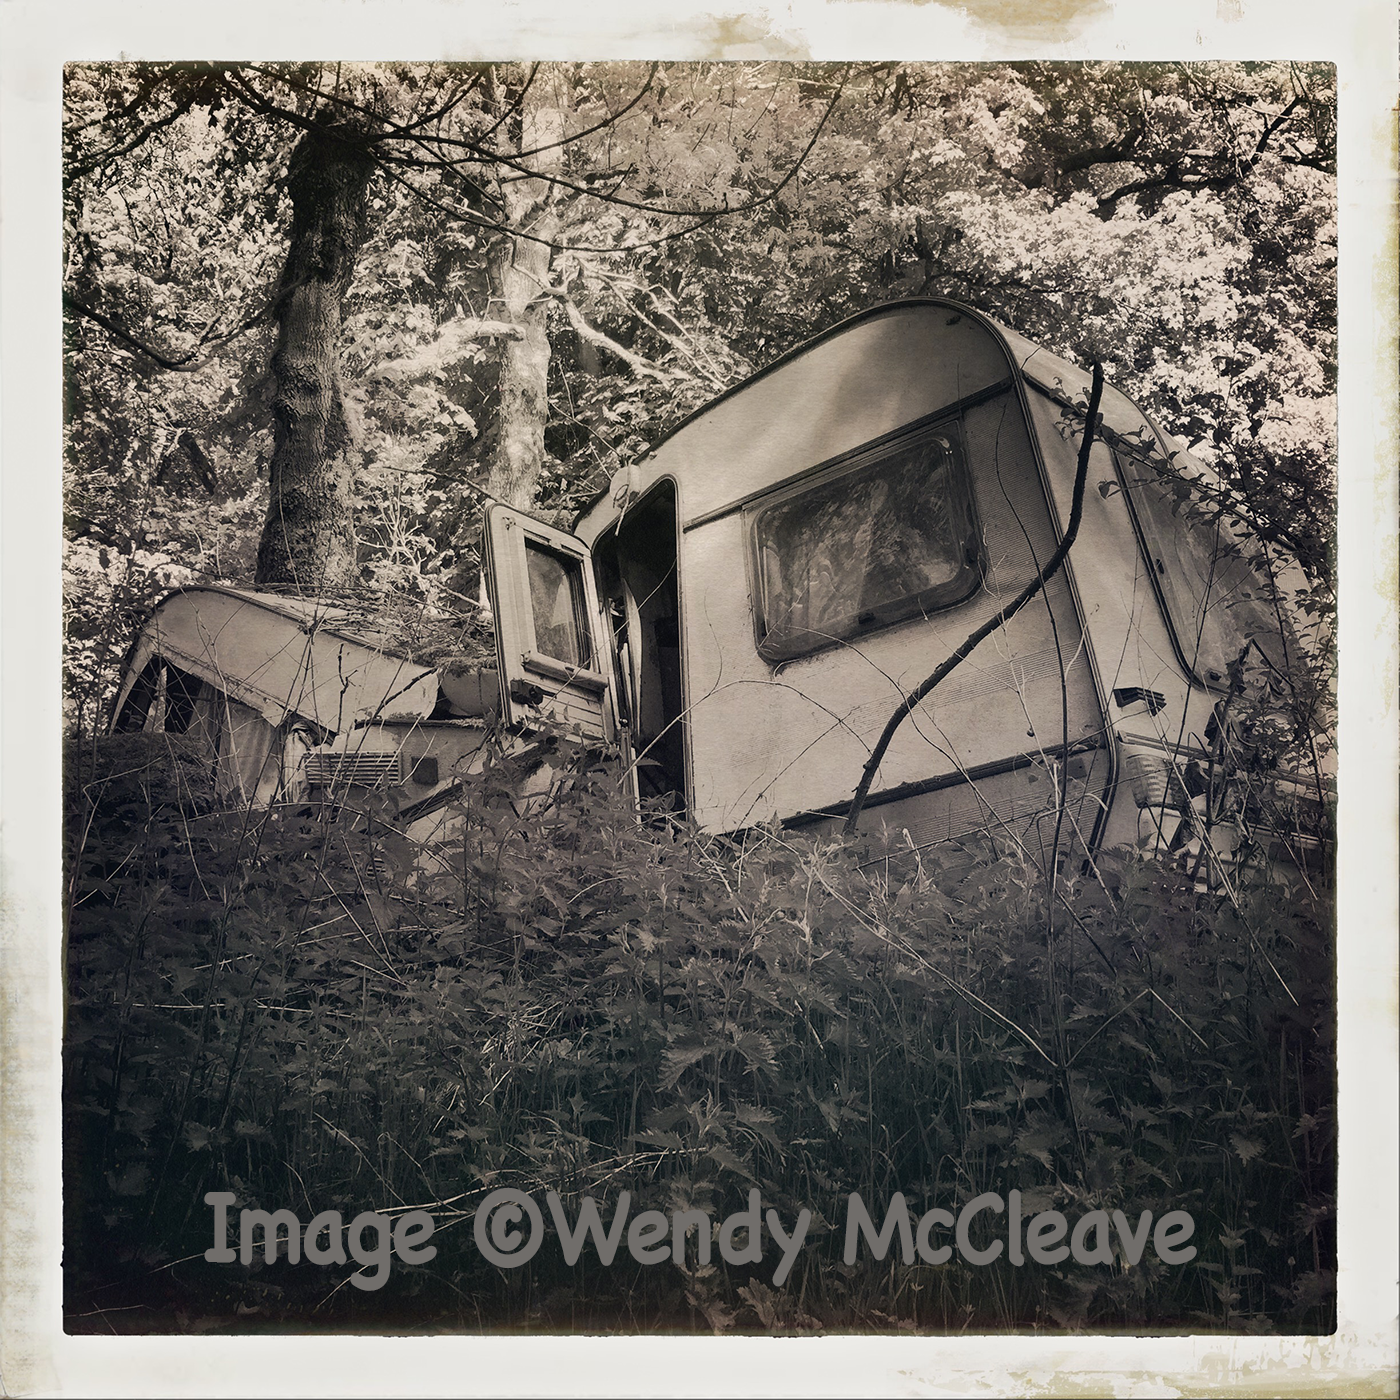 Black and white photograph of a caravan crushed by a tree